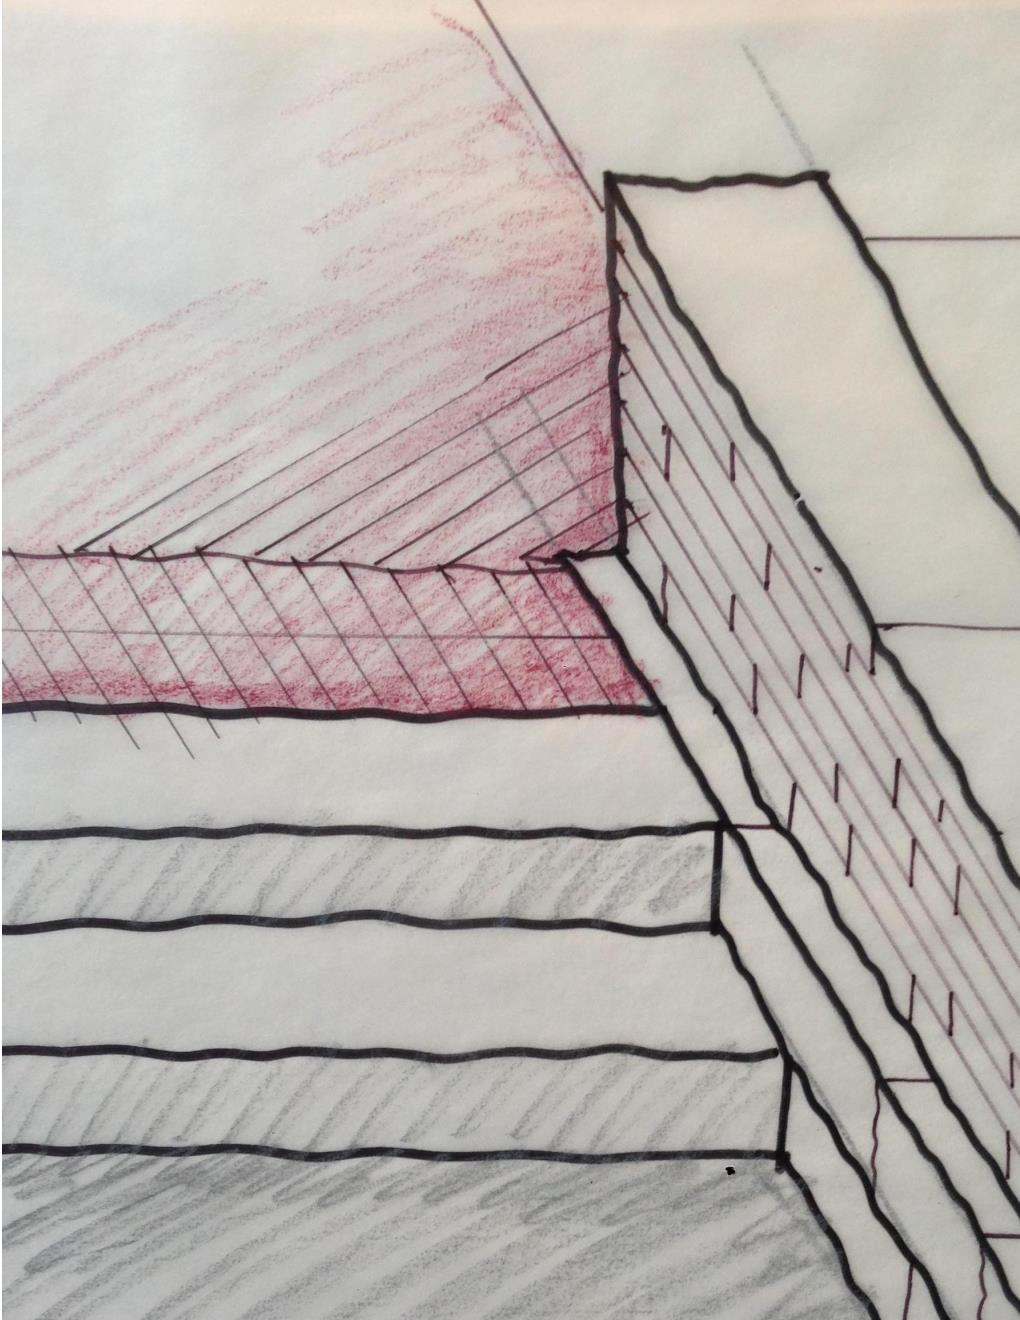 A preliminary sketch for concrete steps meeting the seatwall.